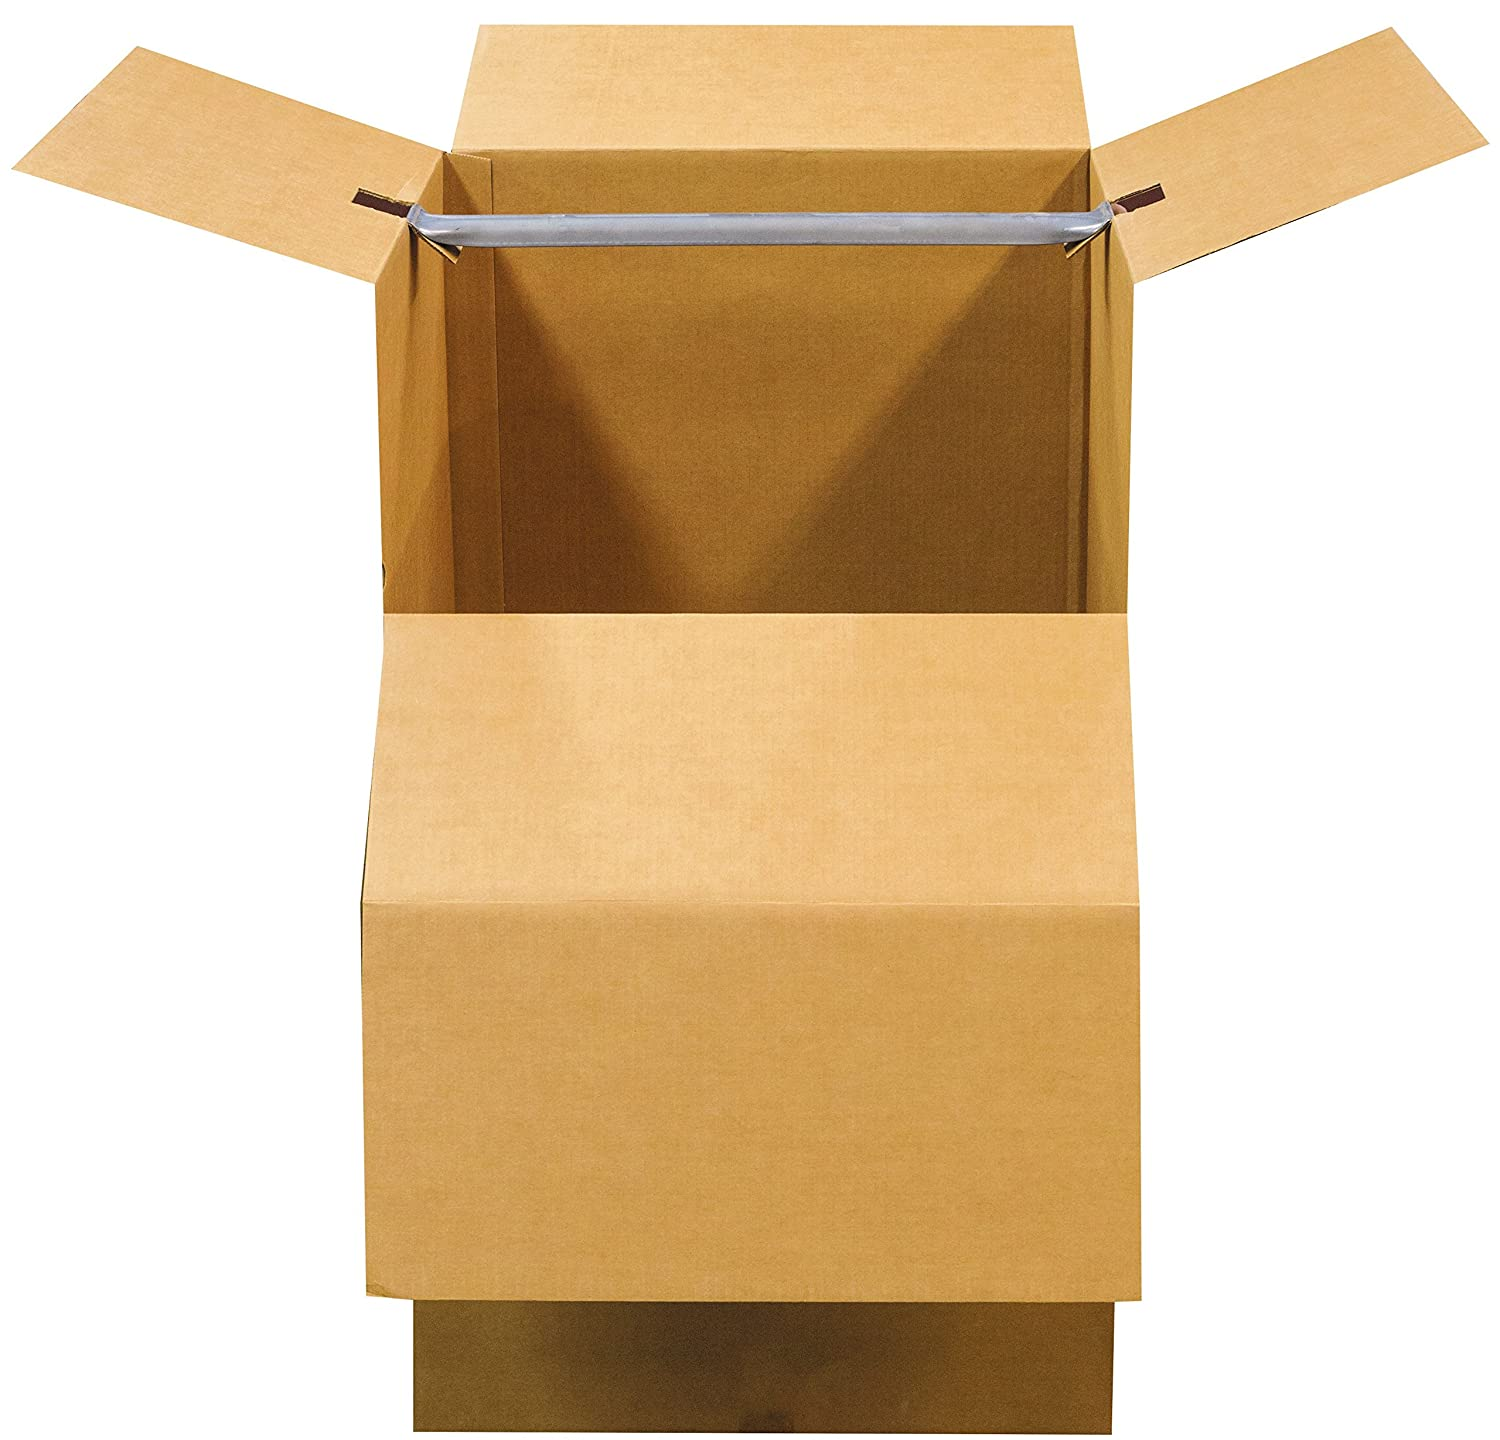 your more online how moving boxes home to wardrobe buy decorate amazing with redesigns